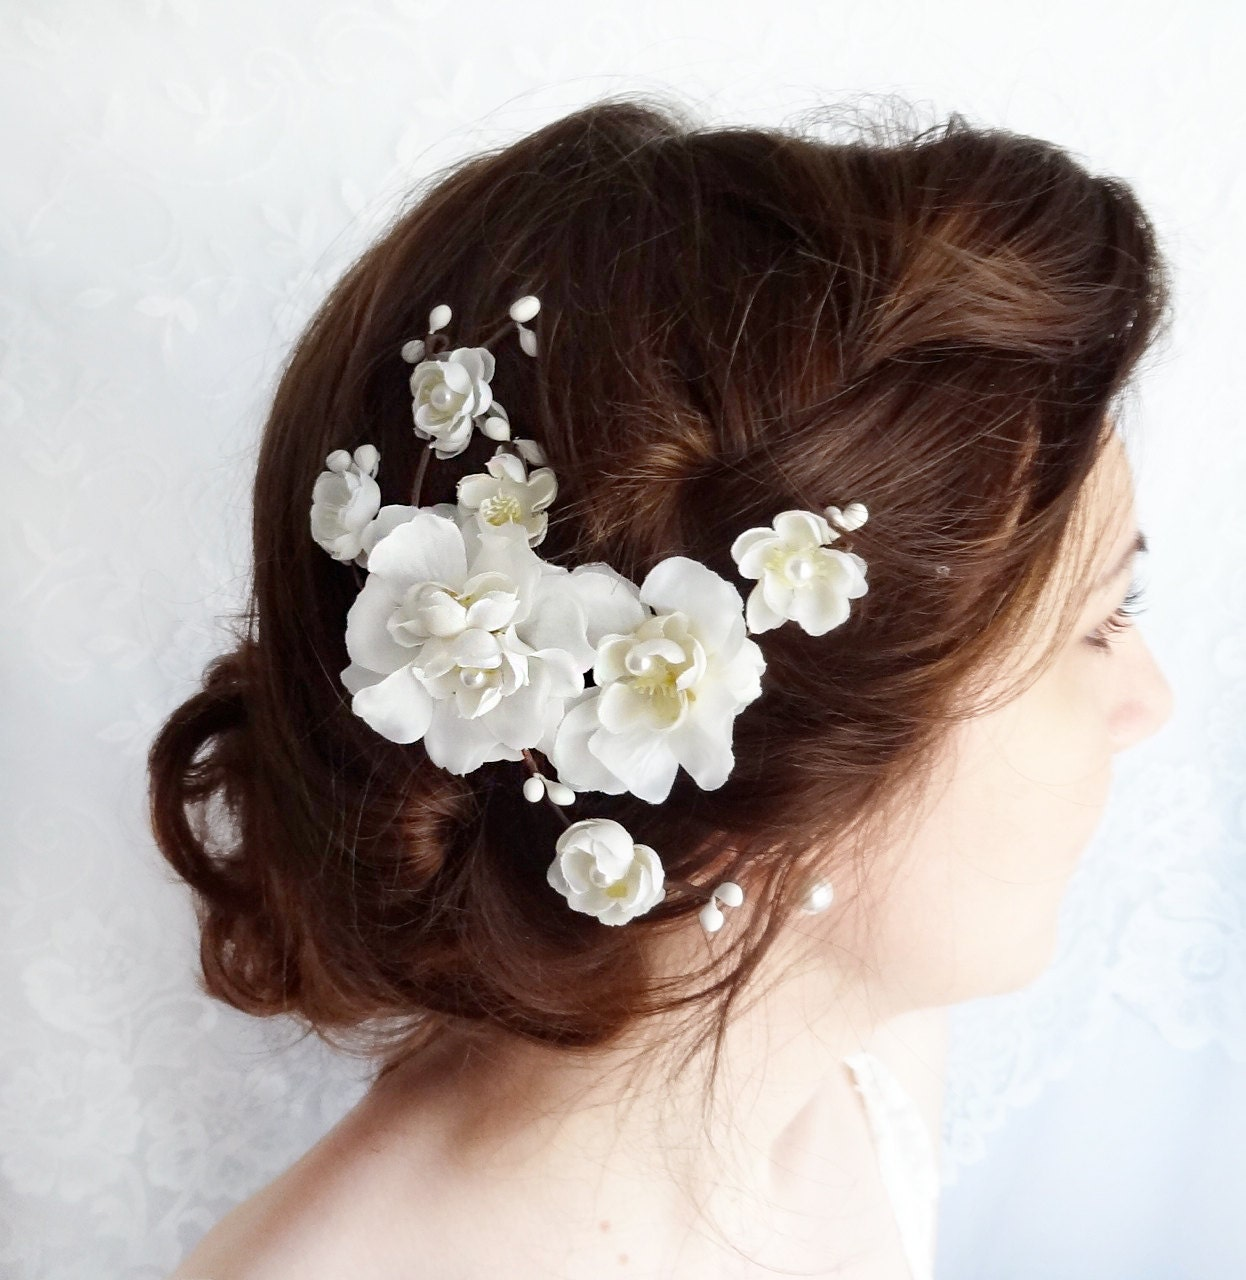 Rustic Wedding Hairstyles: White Flower For Hair Bridal Hair Accessories Rustic